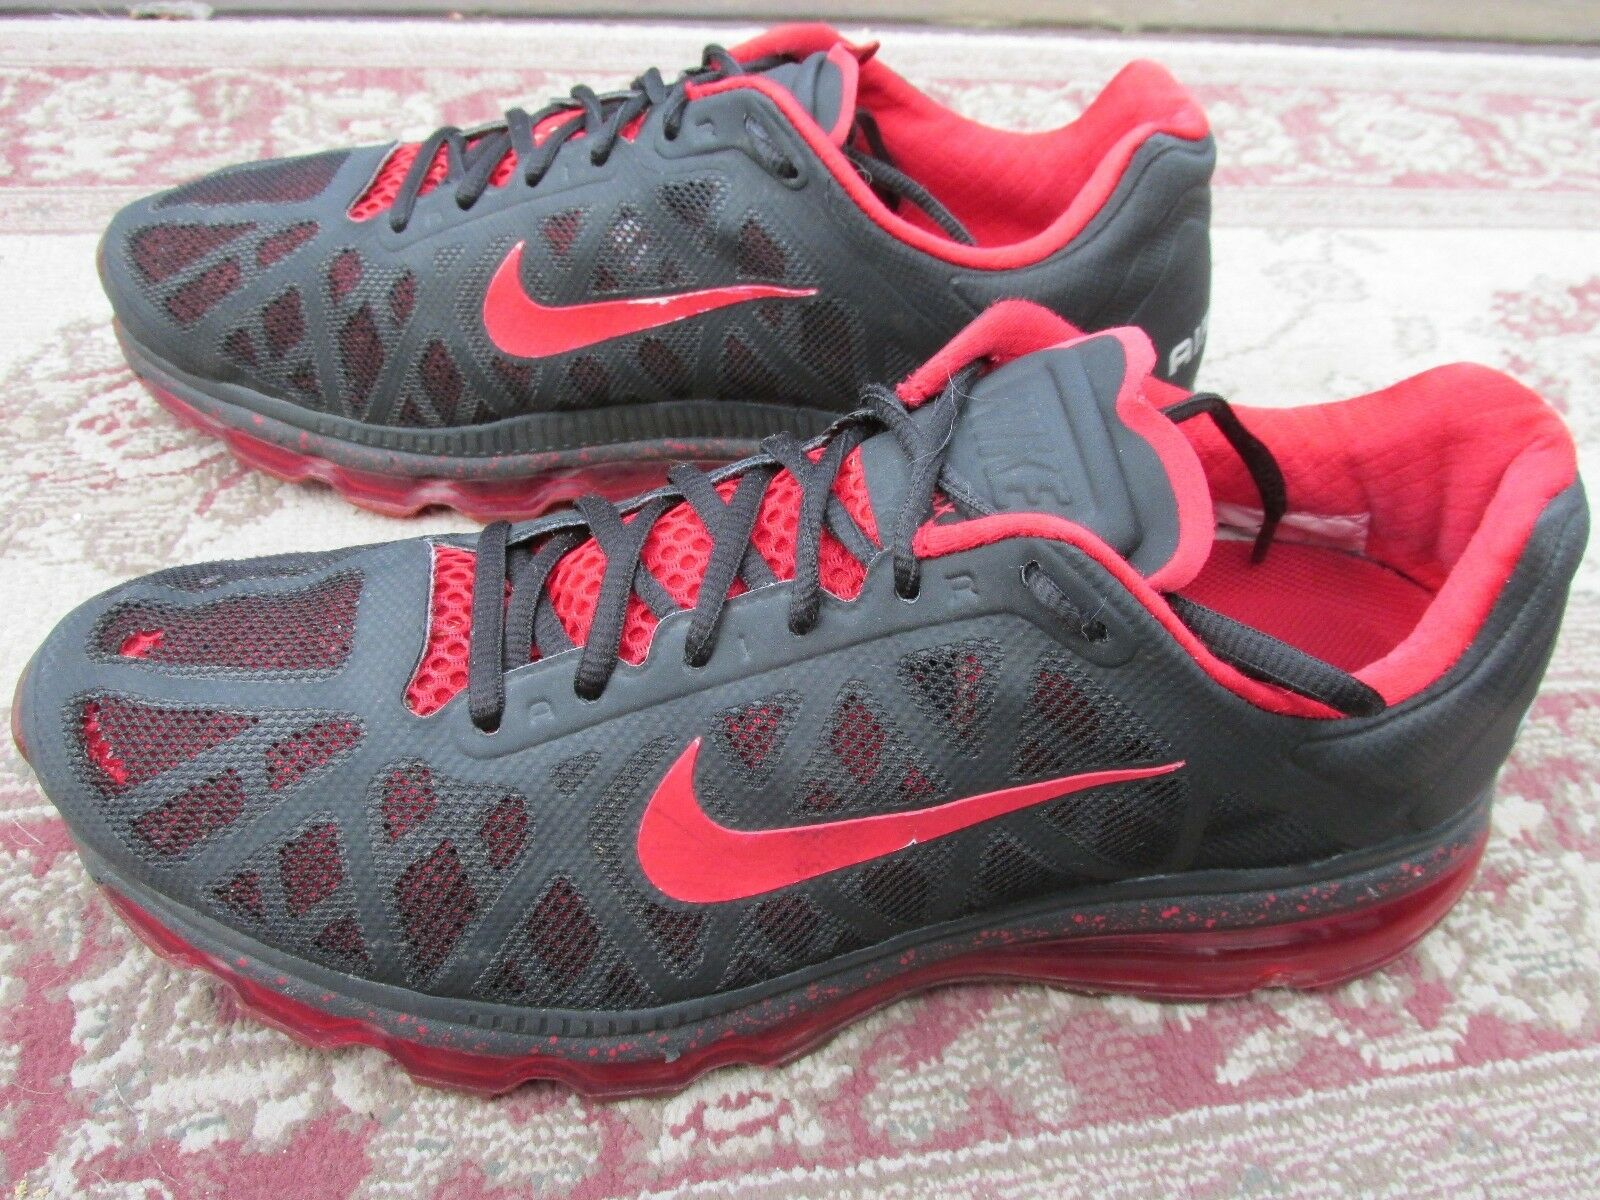 30e429242 Nike Air Max Charcoal Gray Gray Gray Red Low Basketball Shoes Men s US 12M  4a8255